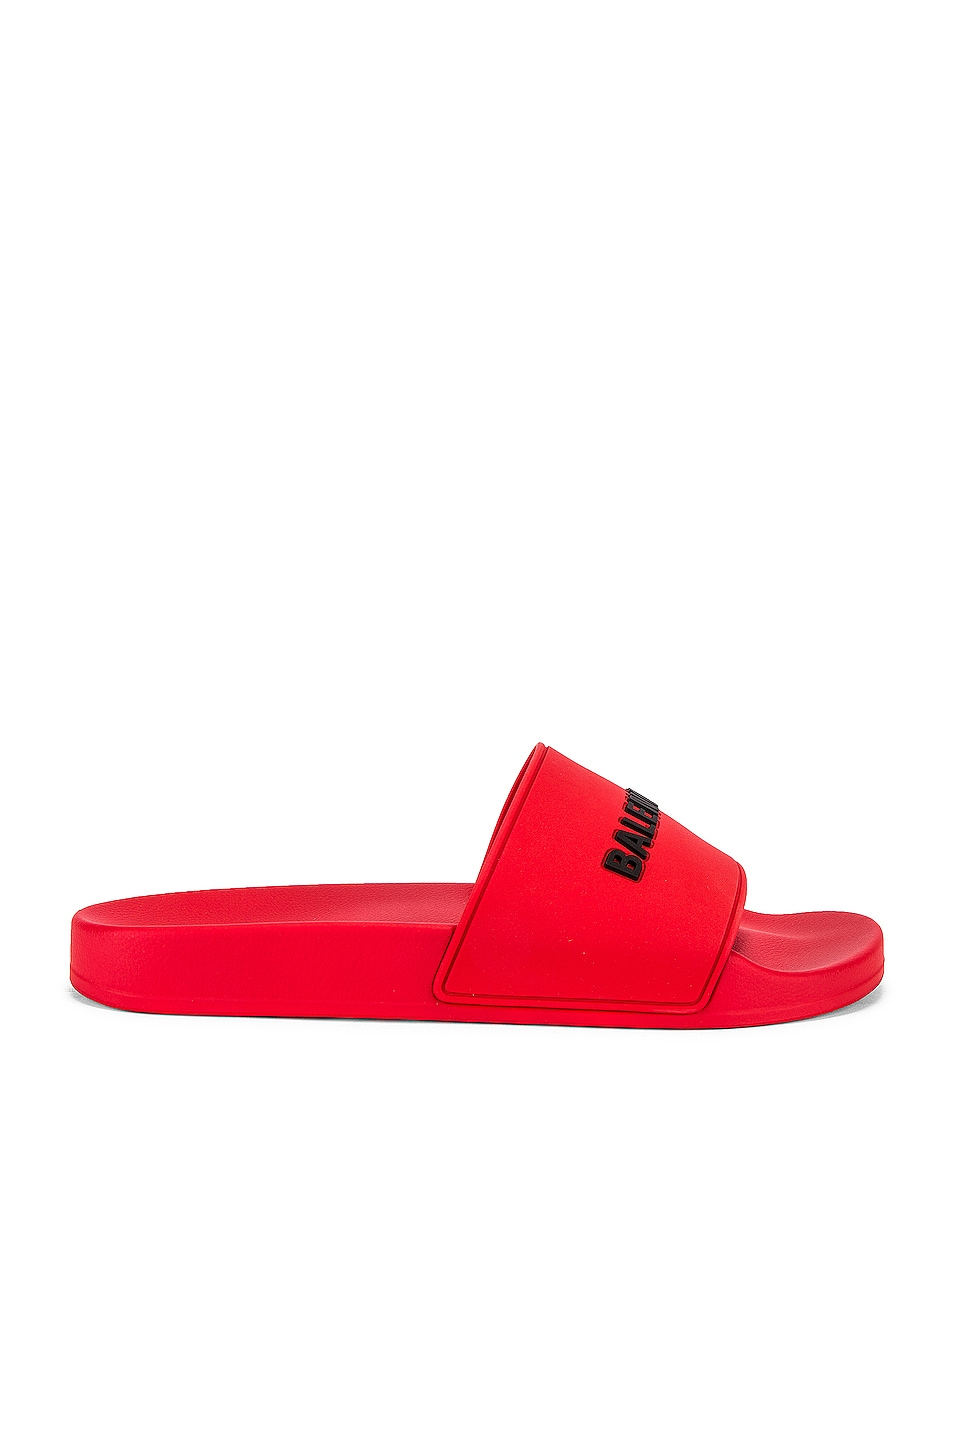 Image 2 of Balenciaga Pool Slide in Red & Black